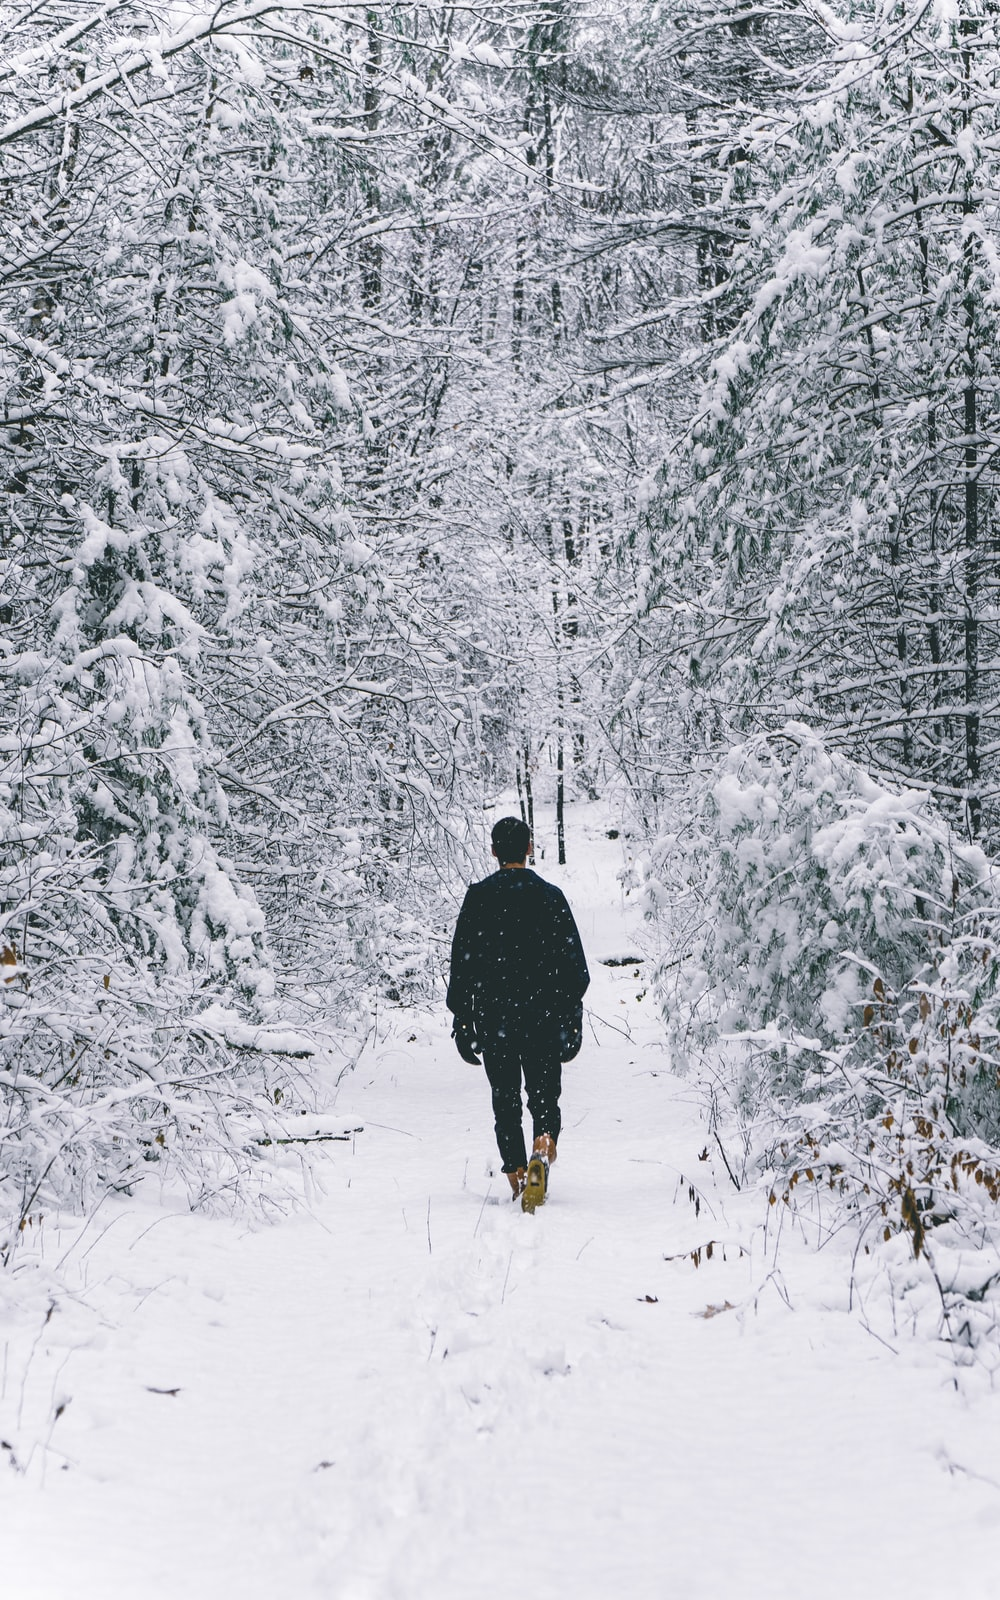 man walking on snow covered field surrounded by trees